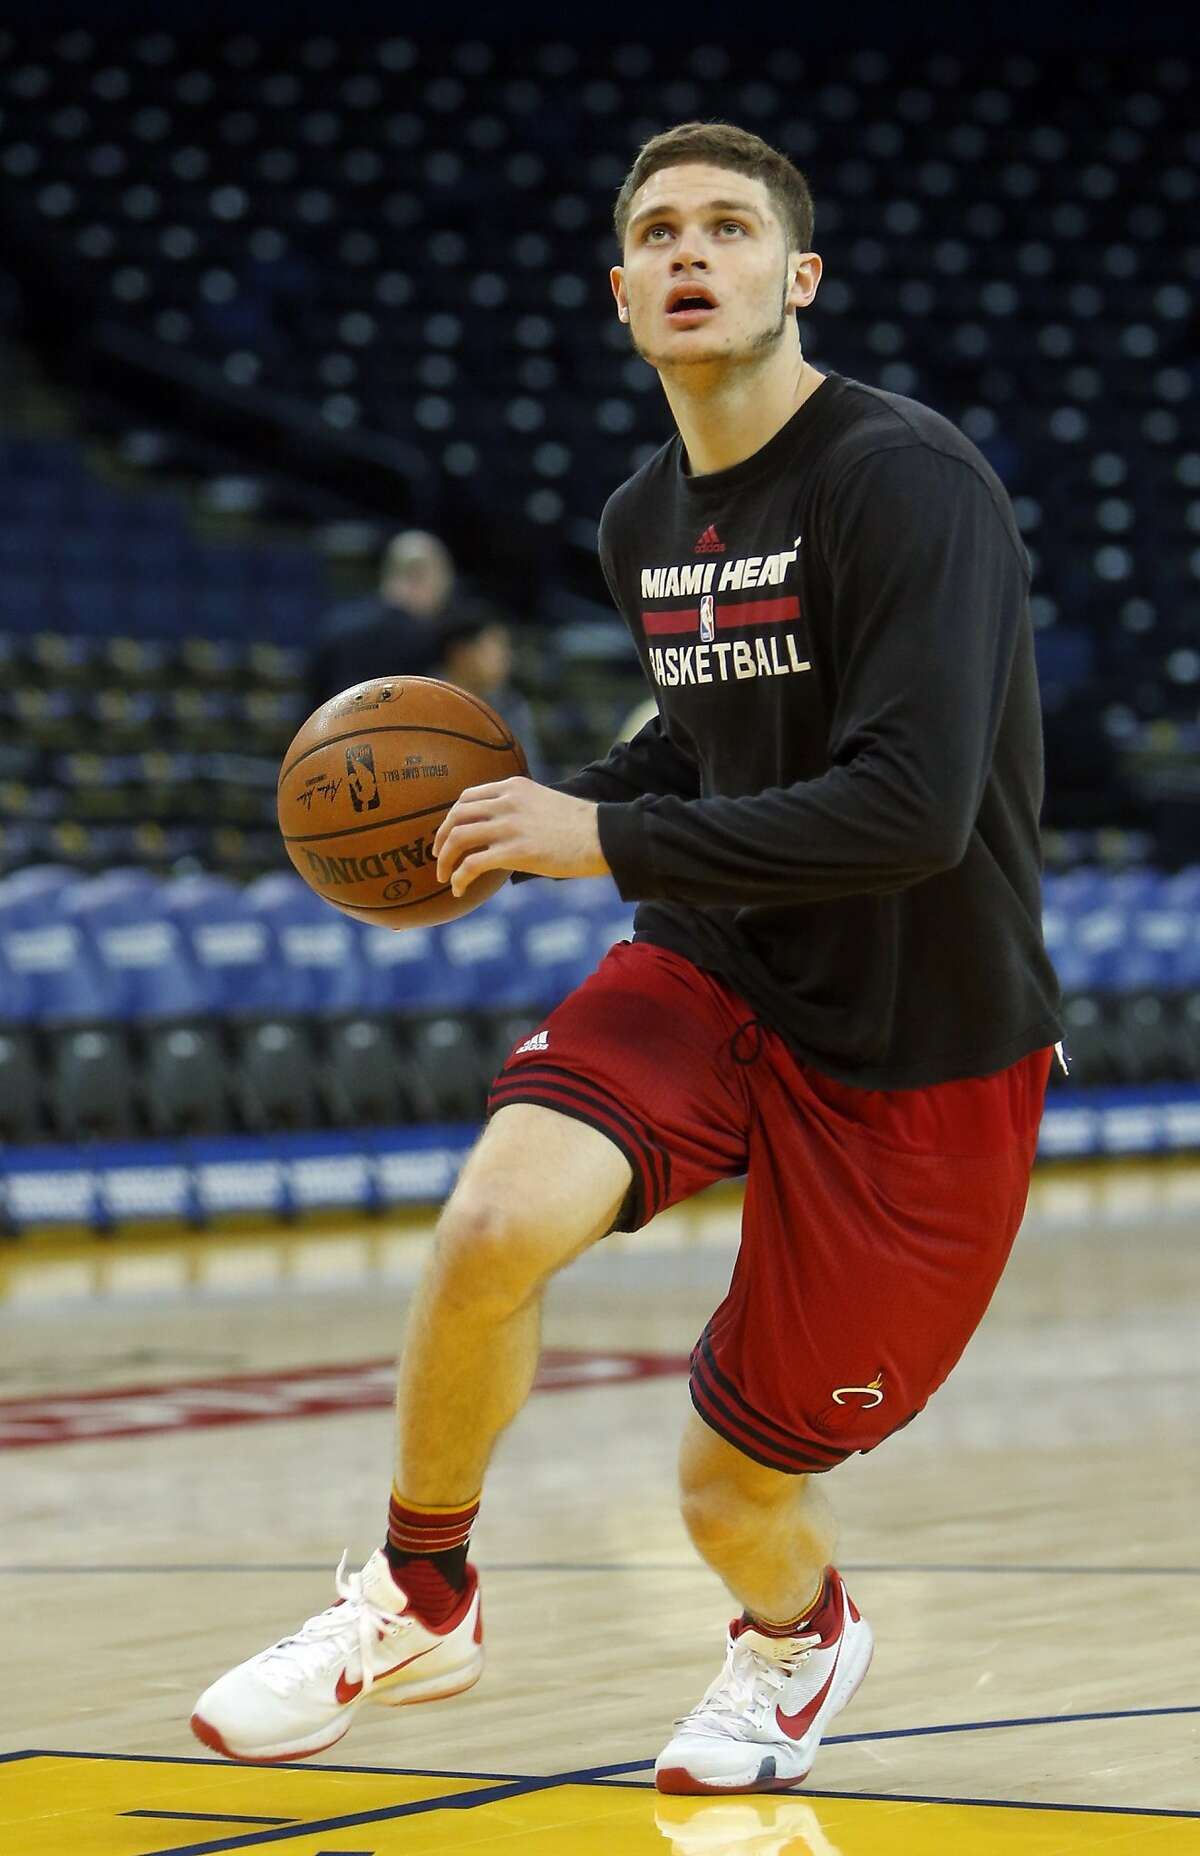 Miami Heat's Tyler Johnson warms up before NBA game against Golden State Warriors at Oracle Arena in Oakland, Calif., on Monday, January 11, 2016.